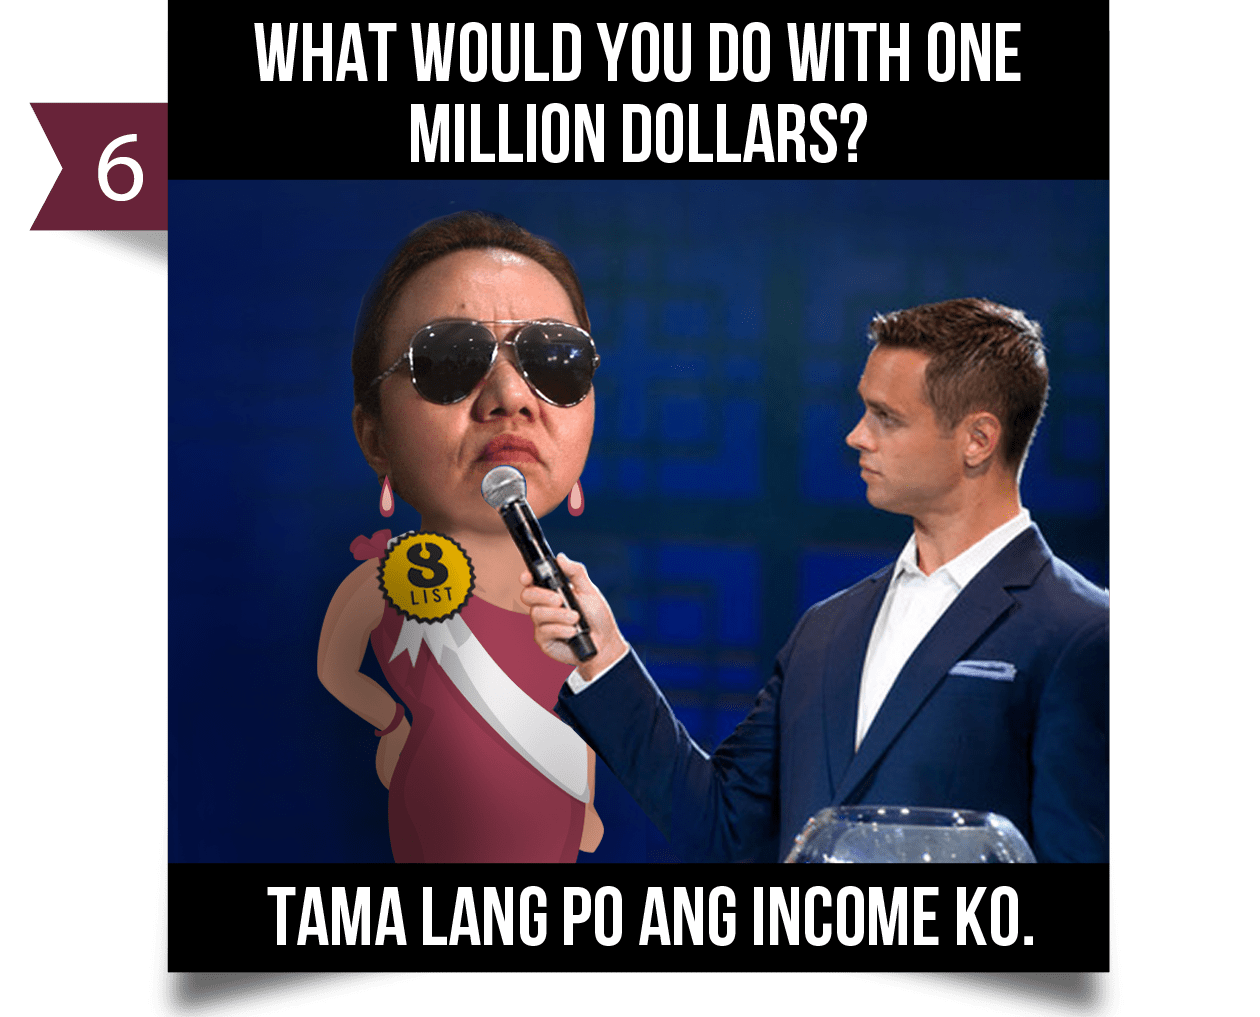 6. What would you do with one million dollars?TAMA LANG PO ANG INCOME KO.